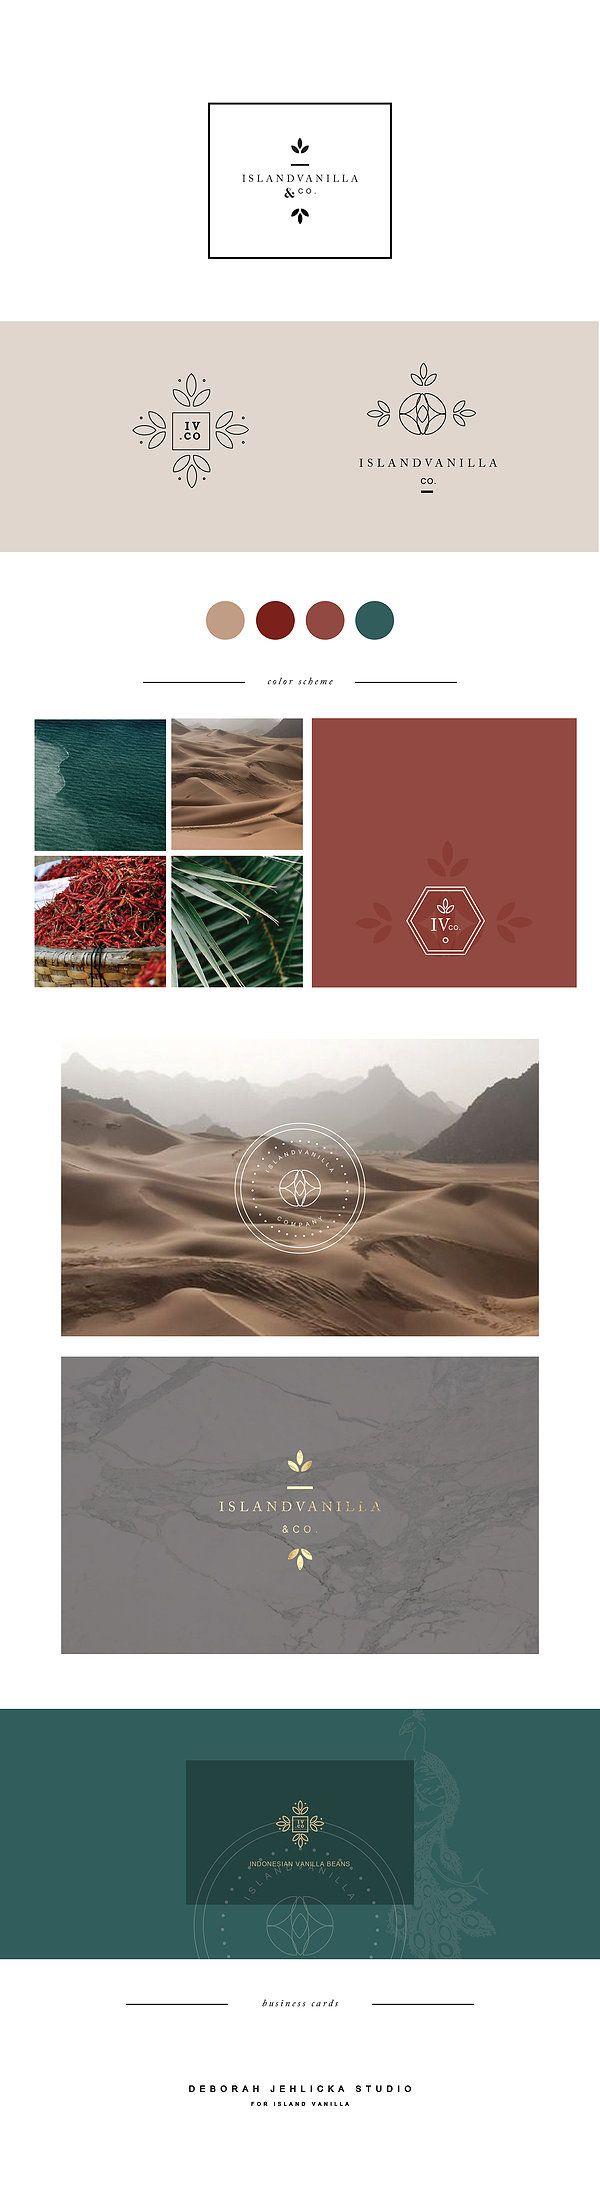 Luxury boutique style Branding for island vanilla. reminiscent of exotic locals and travel. By Deborah Jehlicka Studio